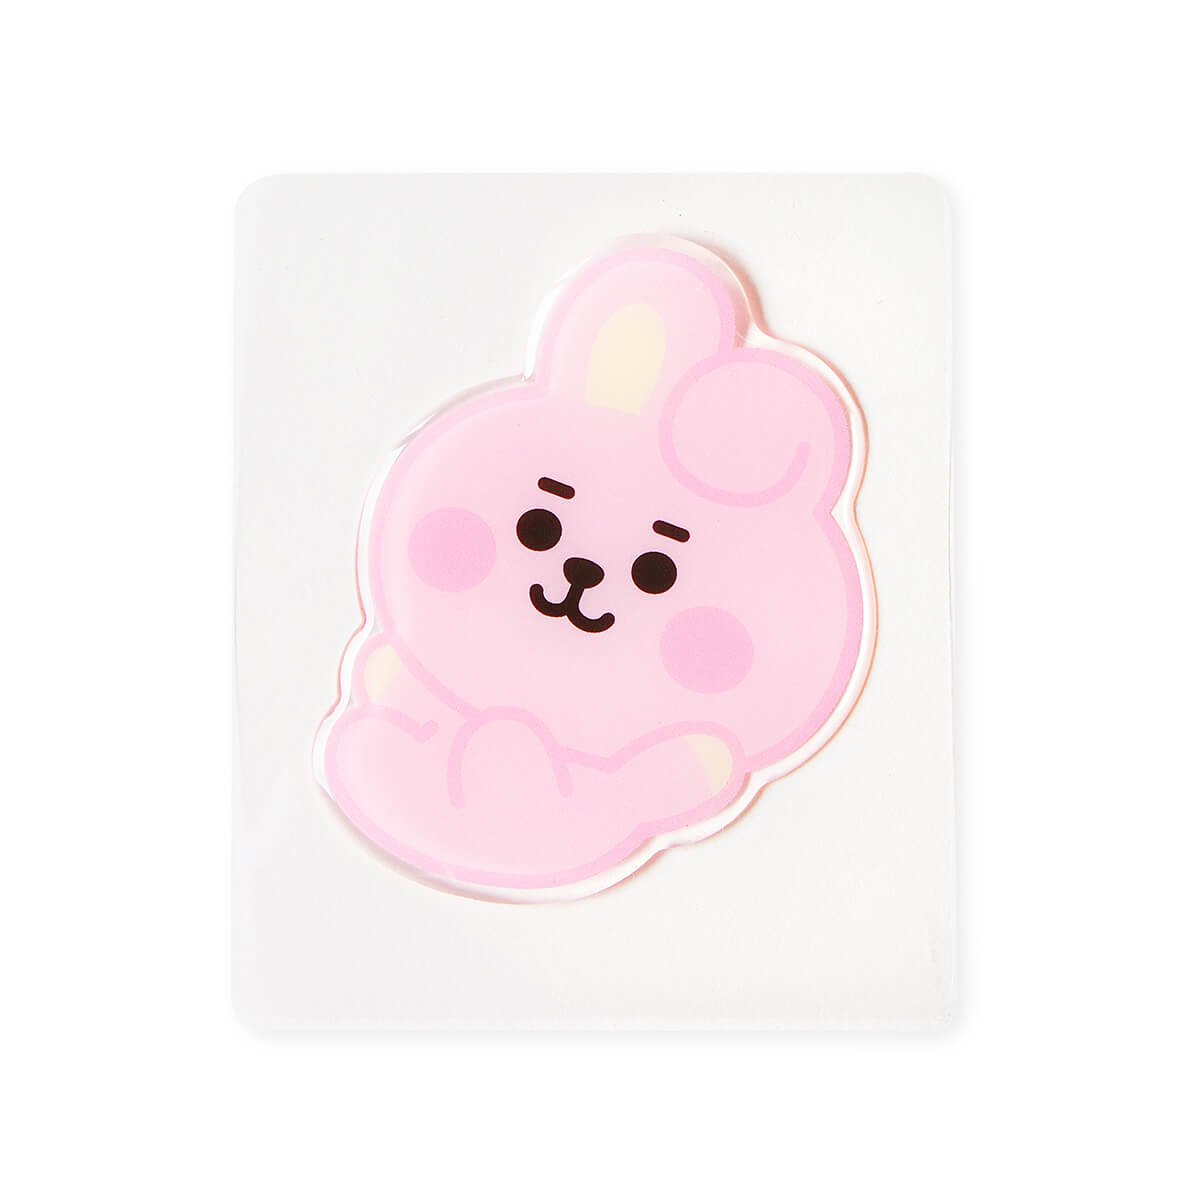 BT21 Baby COOKY Epoxy Decal Sticker (29)